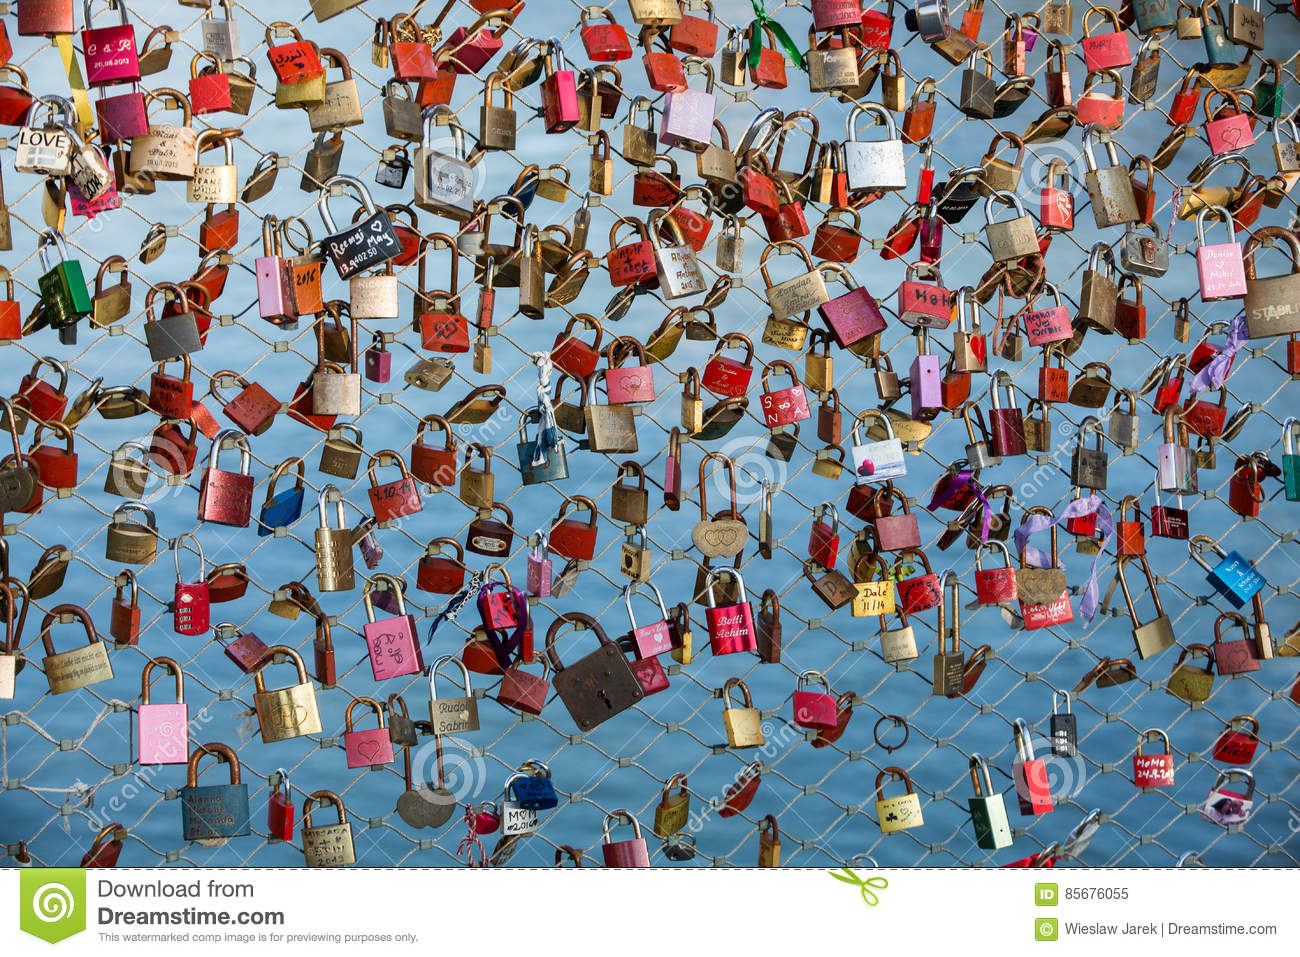 Close up of padlocks as a symbol of everlasting love at a bridge close up of padlocks as a symbol of everlasting love at a bridge in salzburg austria over the river salzach hang ceremony biocorpaavc